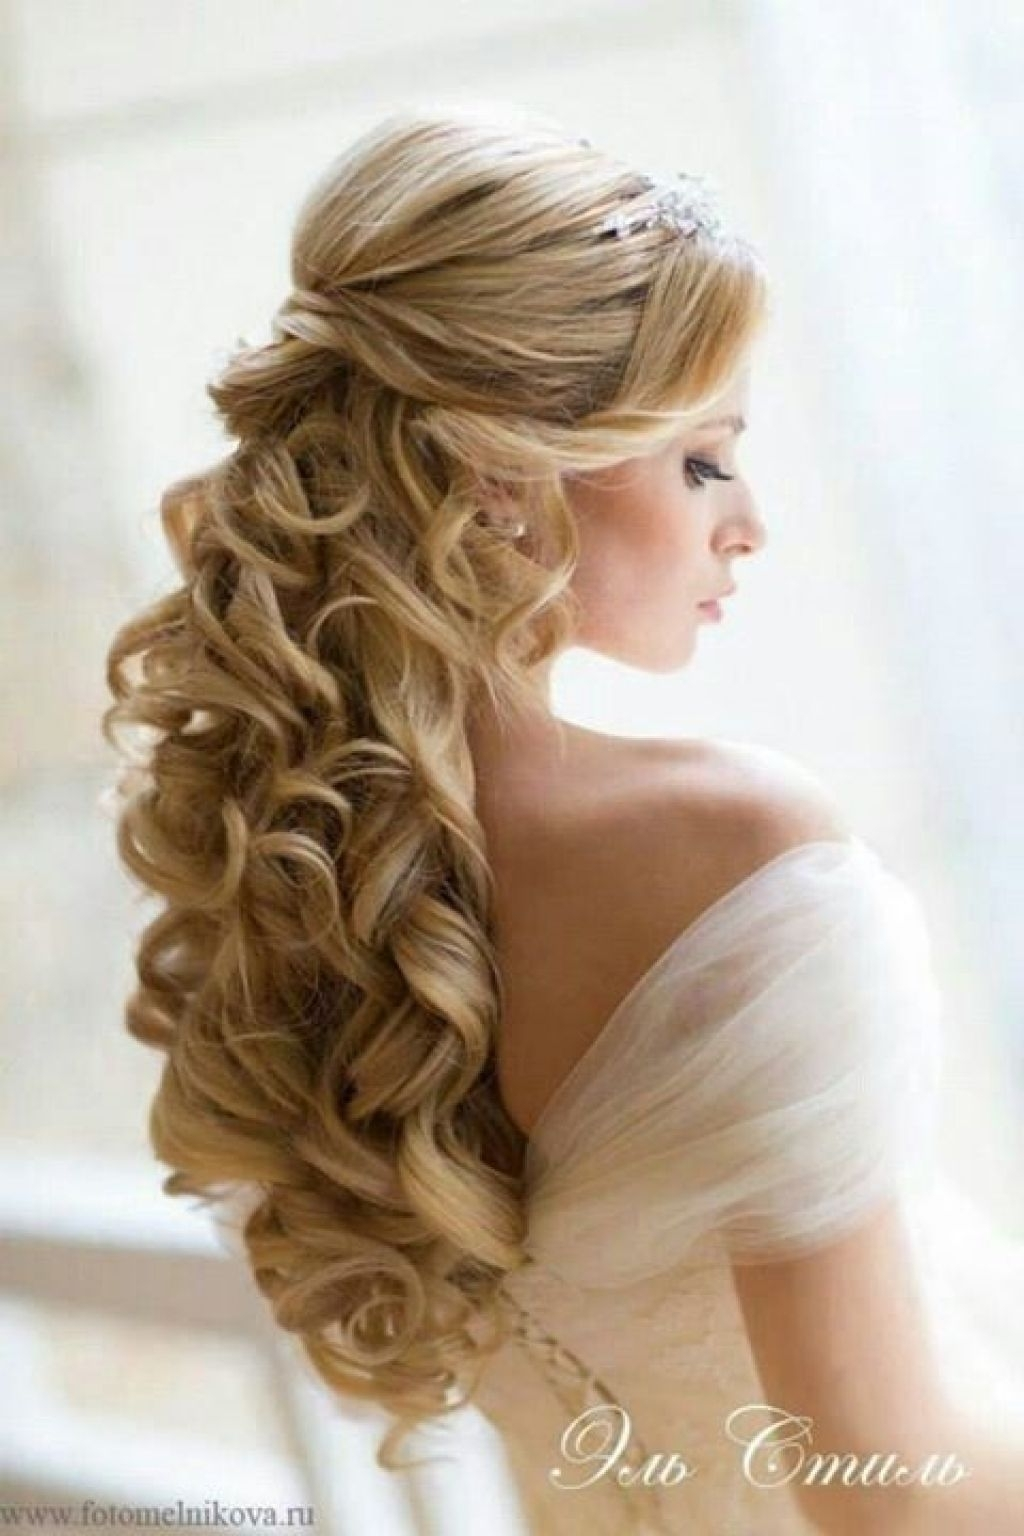 Wedding Hairstyles For Long Hair Half Up Dfemale Beauty Tips Easy Regarding Popular Long Hair Up Wedding Hairstyles (View 8 of 15)